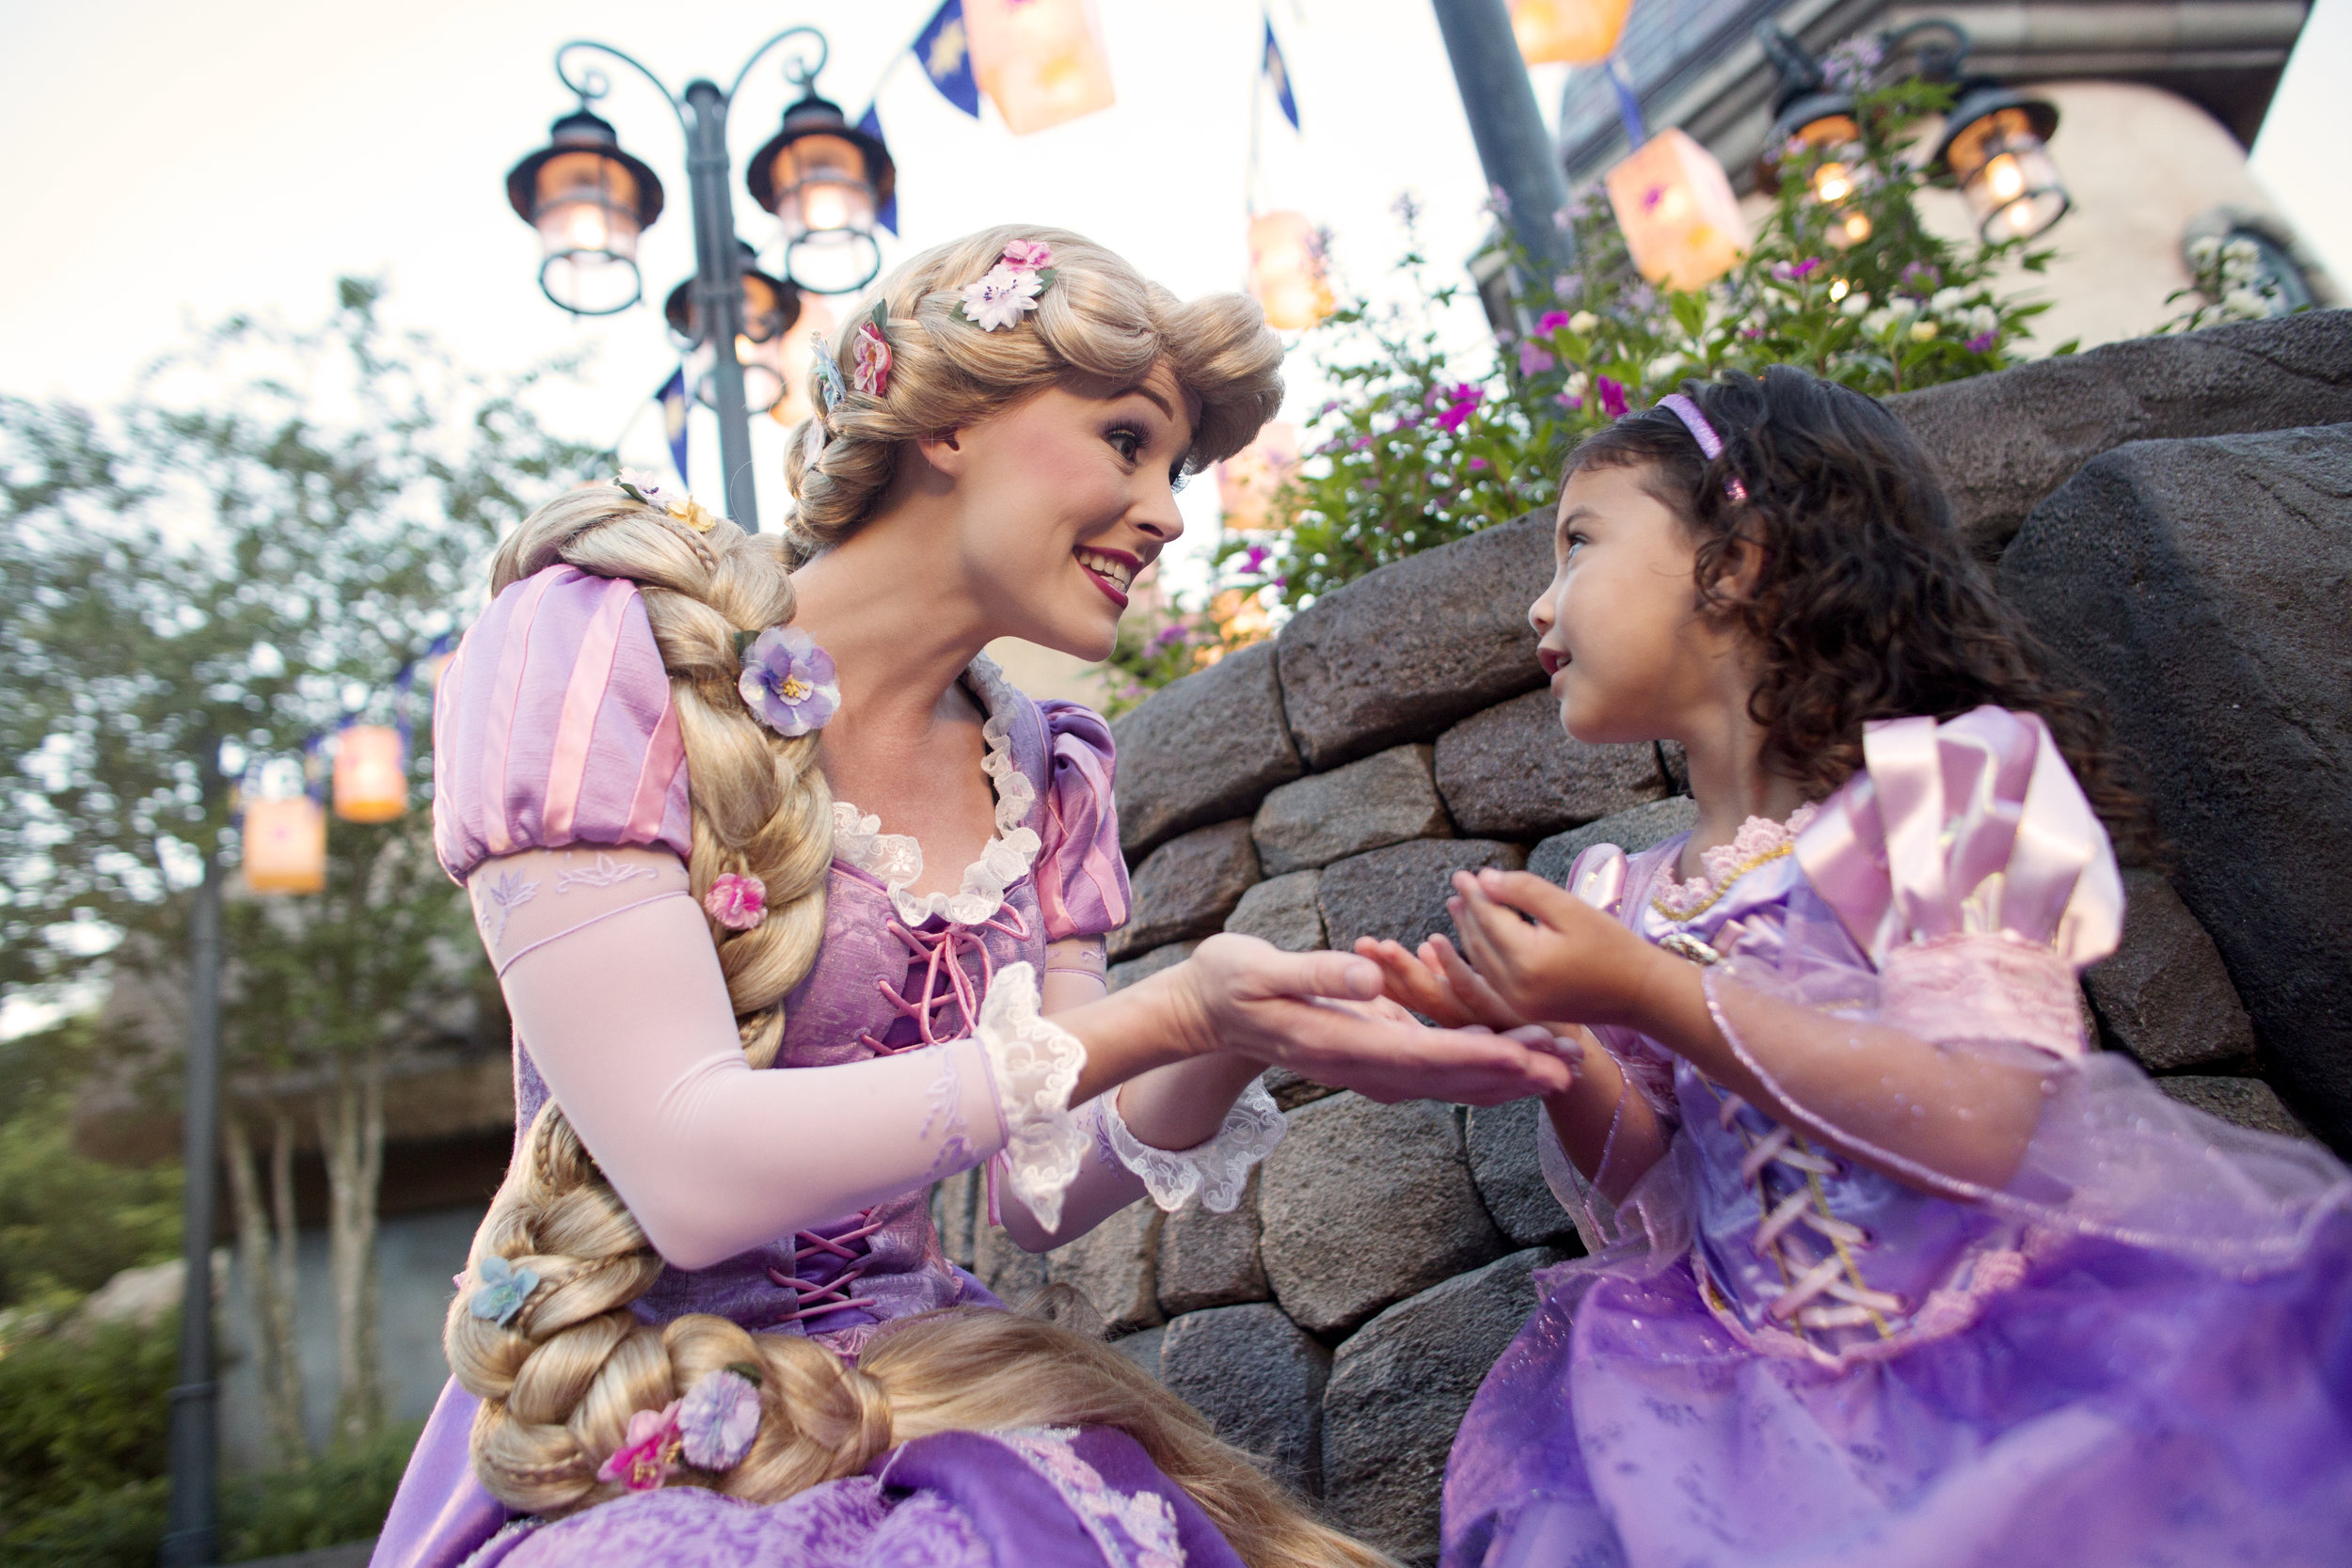 Disney Destinations - Immerse yourself in the wonder and joy of theme parks, plunge into a world of relaxing through cruising, treat yourself to a tropical getaway, or explore cultural guided tours around the world all through the magic of Disney.